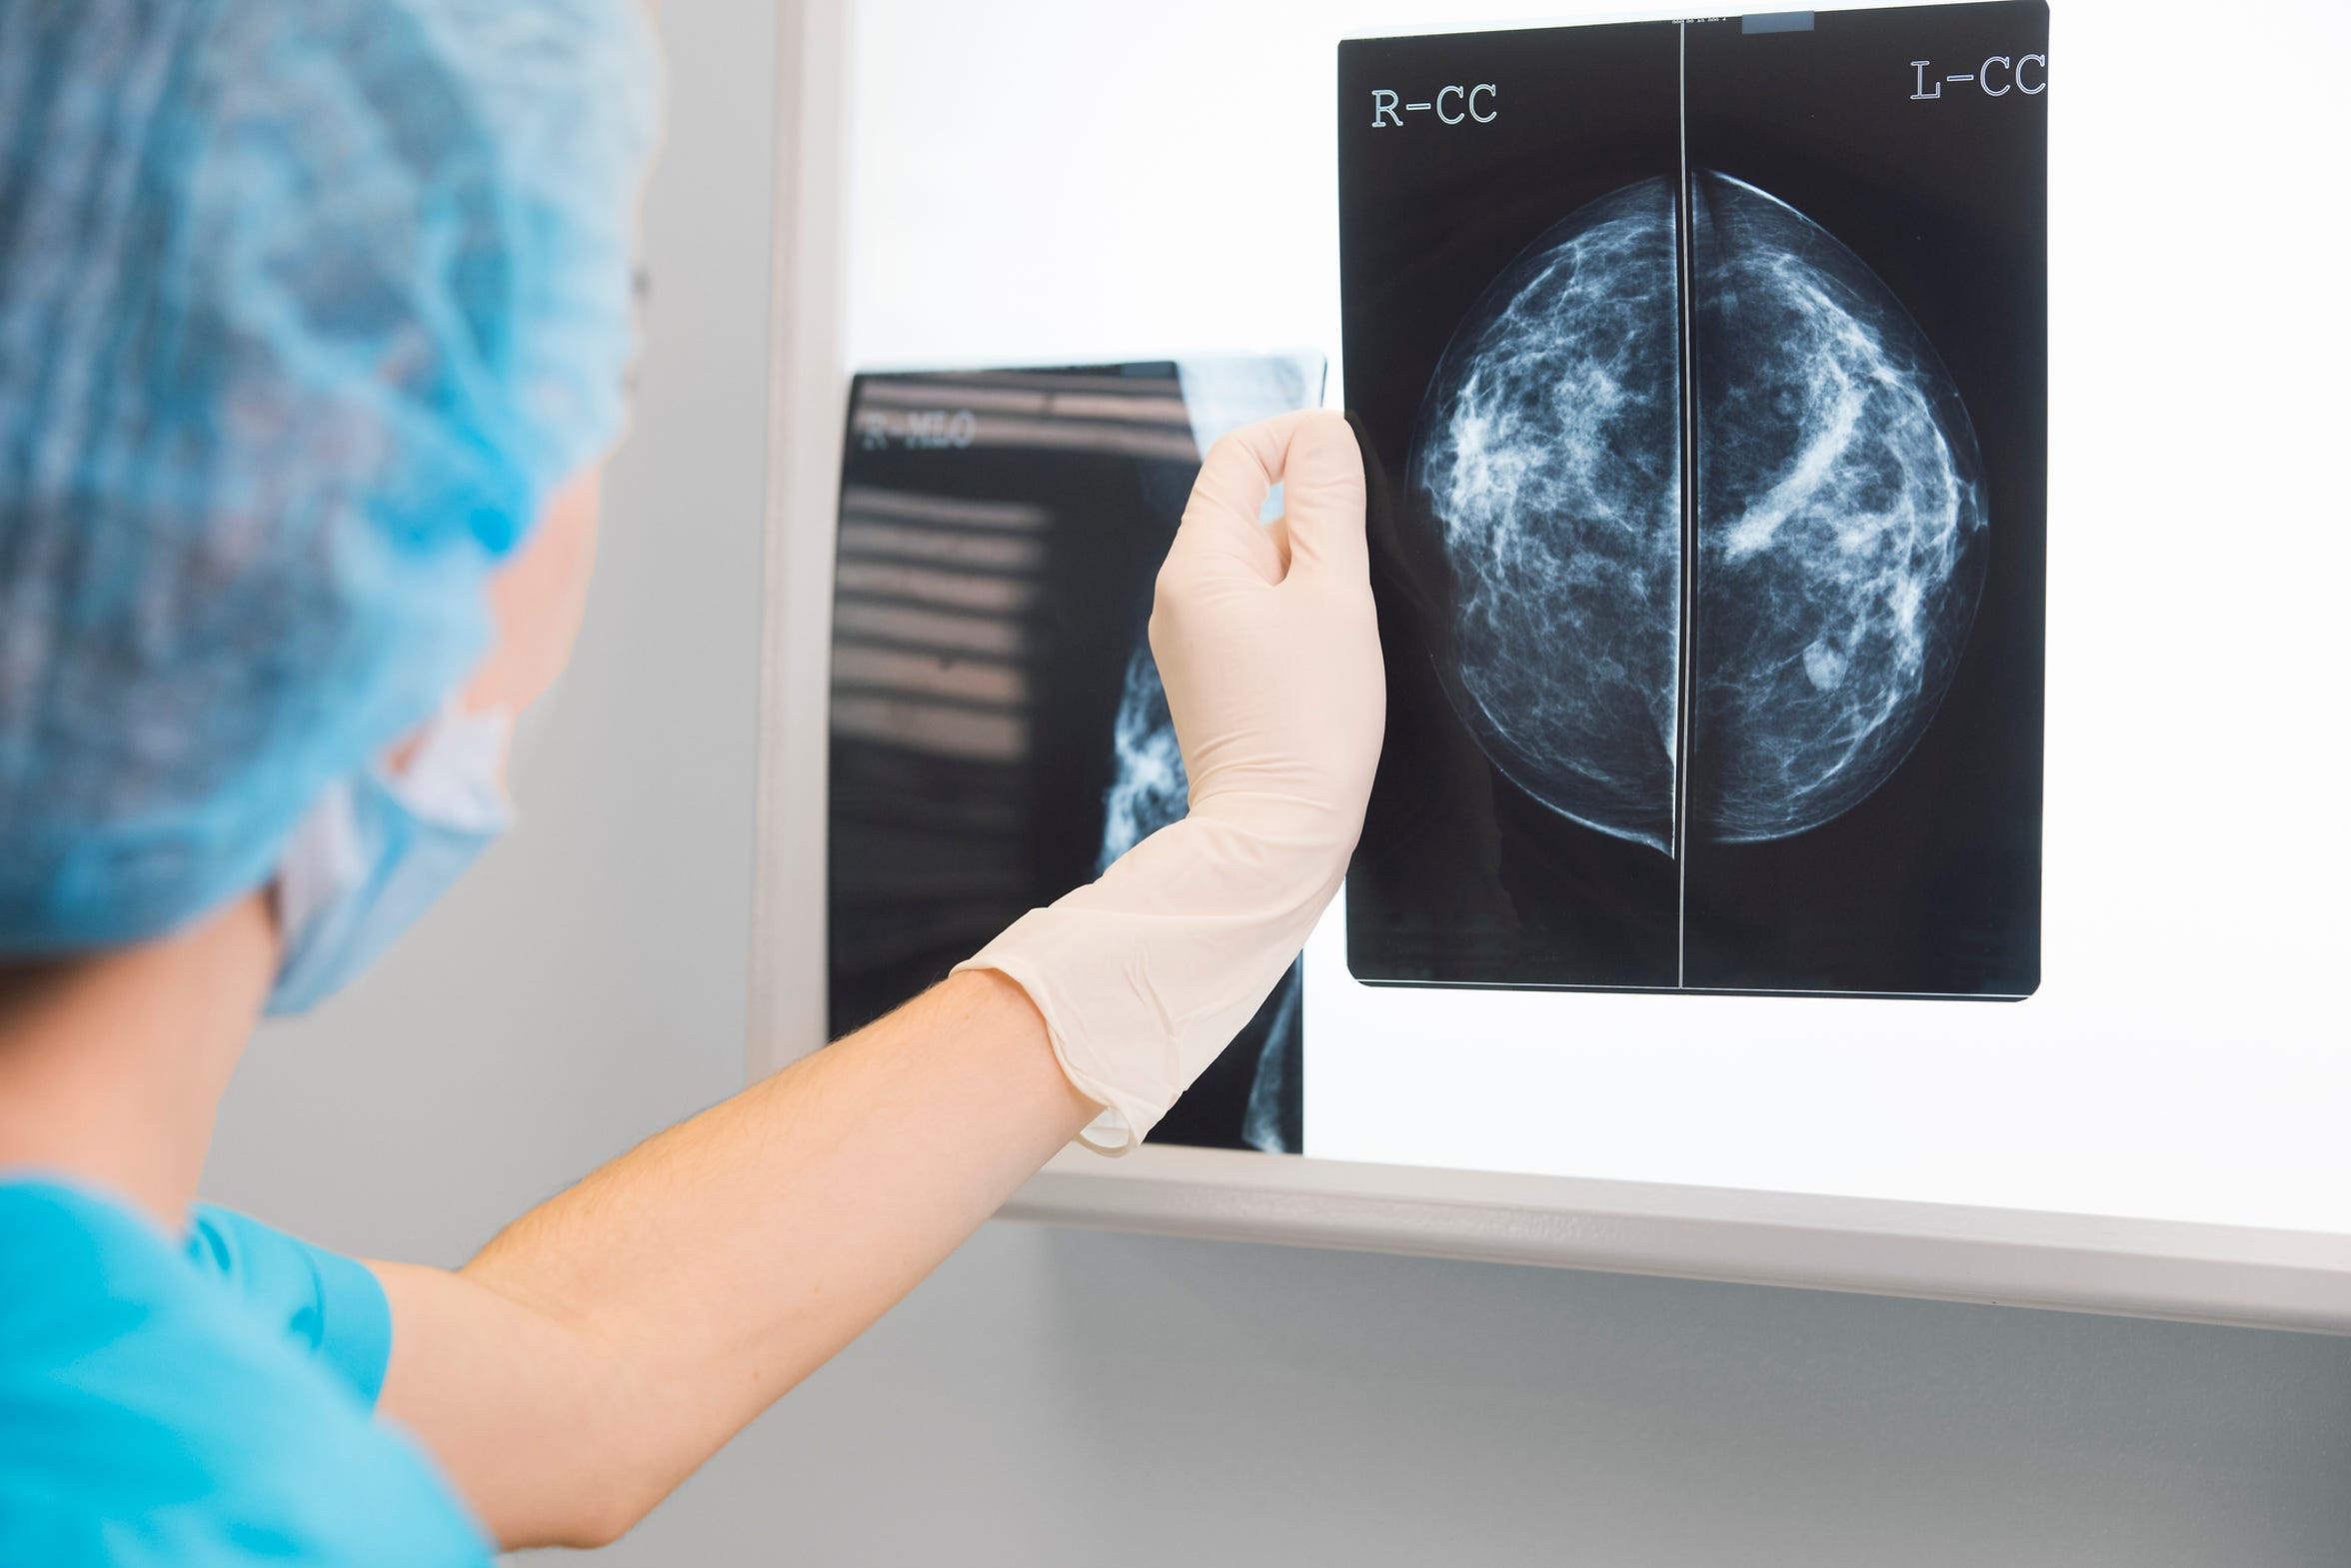 Women who feel a lump or have a family history of breast cancer should talk to their doctor about screening.